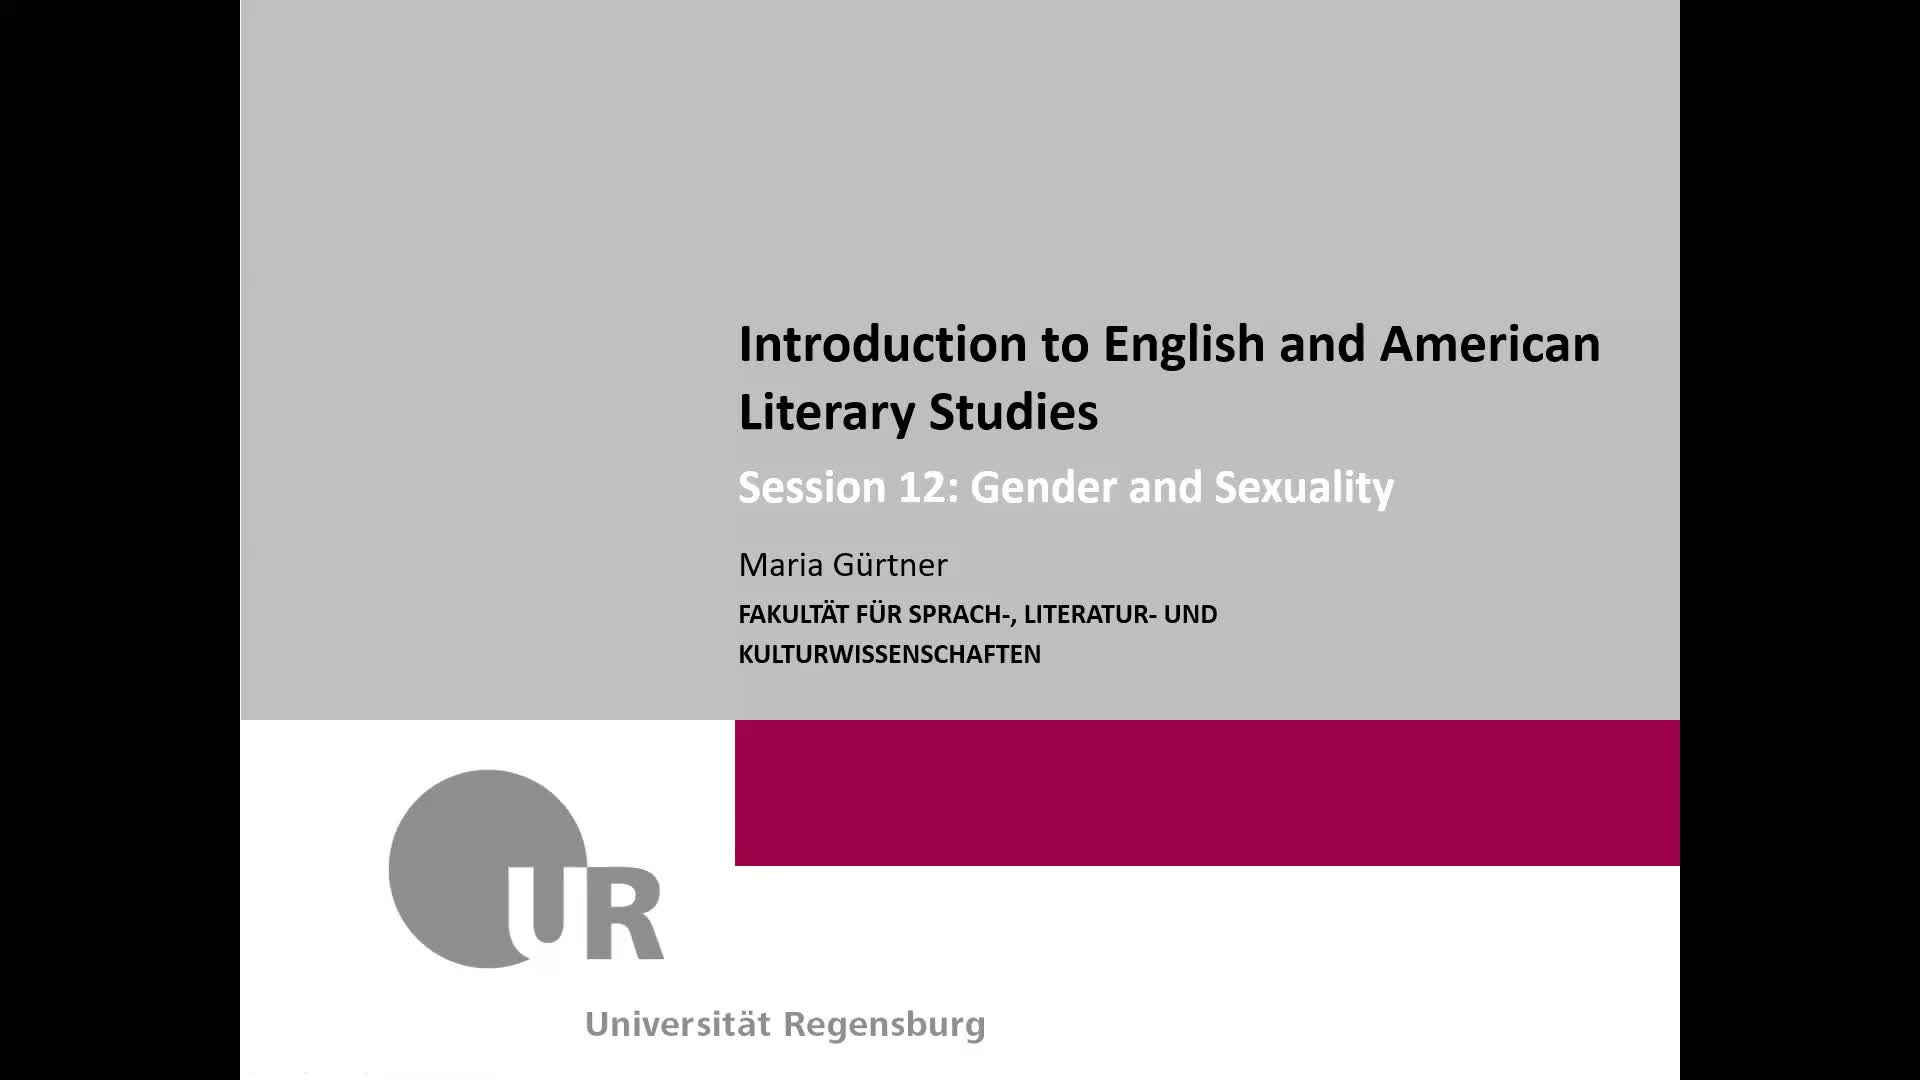 Session 12: Gender and Sexuality